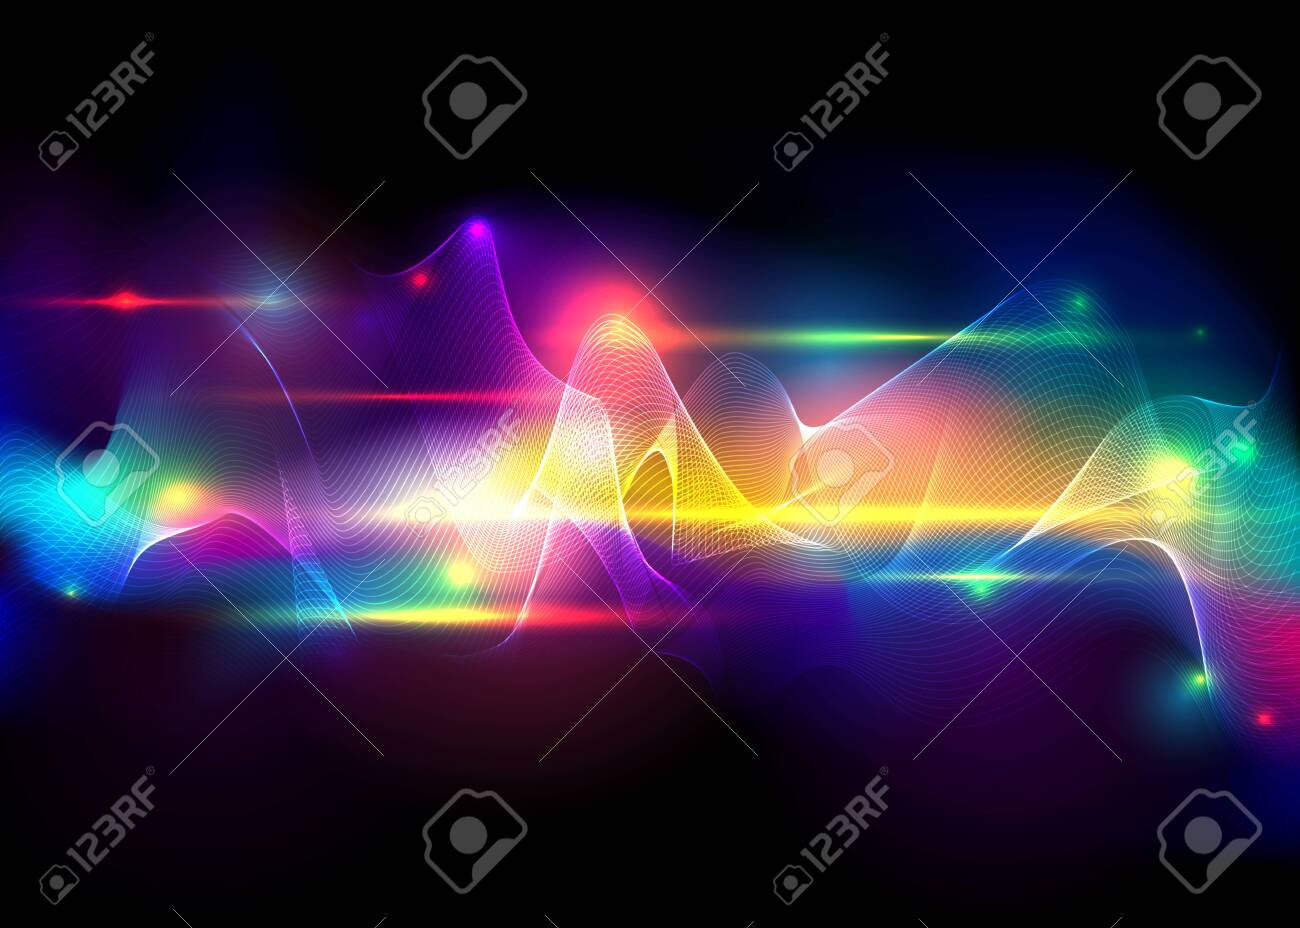 Aurora borealis shiny, abstract vector aurora australis background for web and print , cute abstract a natural light display in the sky. - 130423025